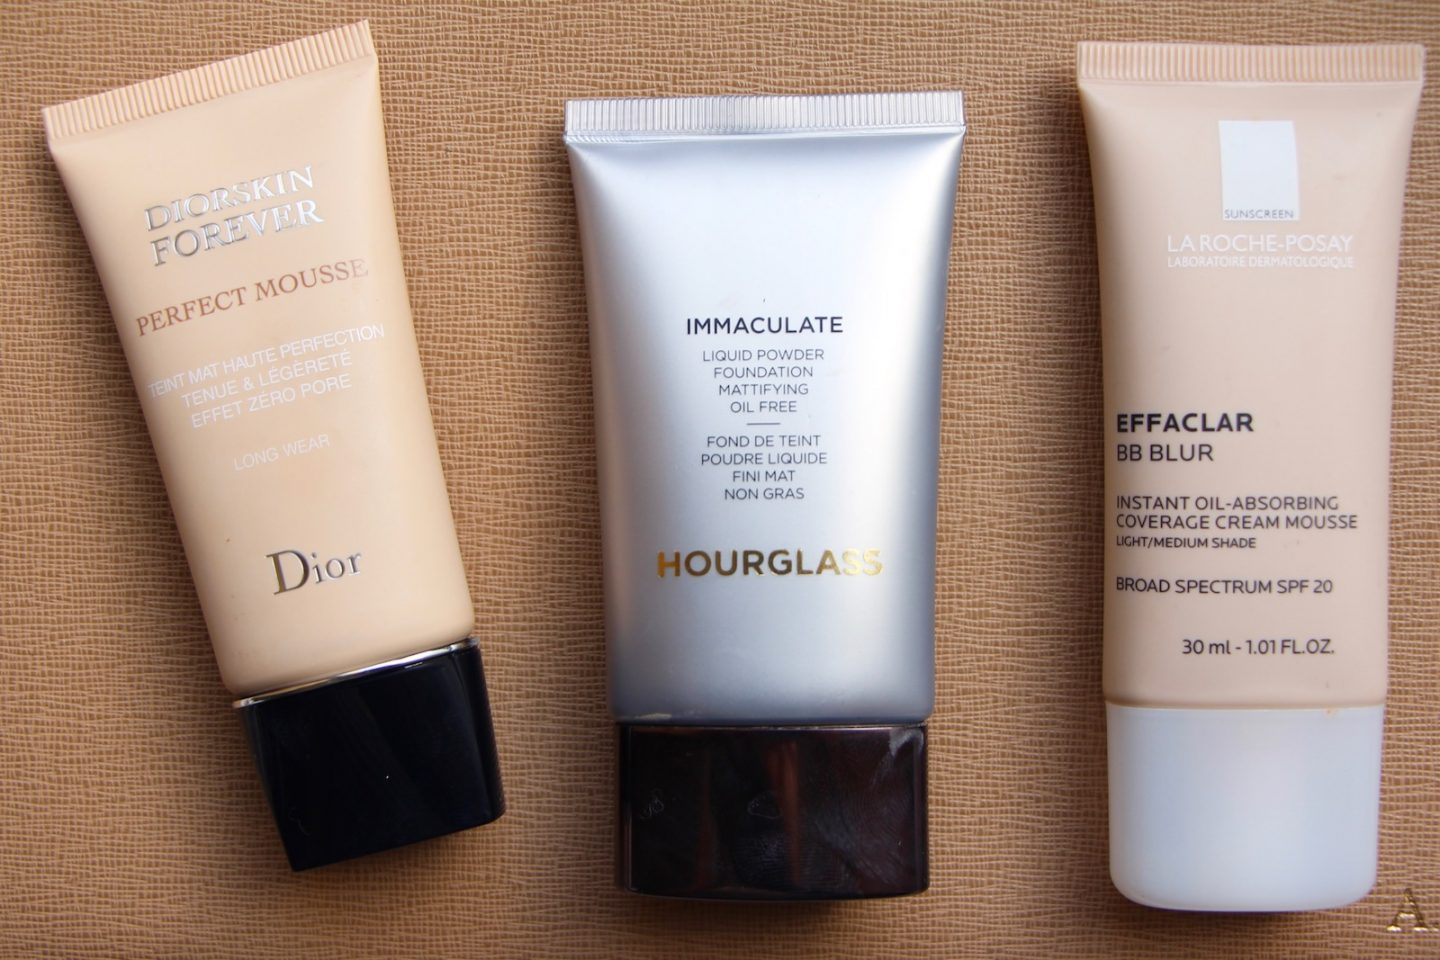 Diorskin Forever Perfect Mousse Foundation Review